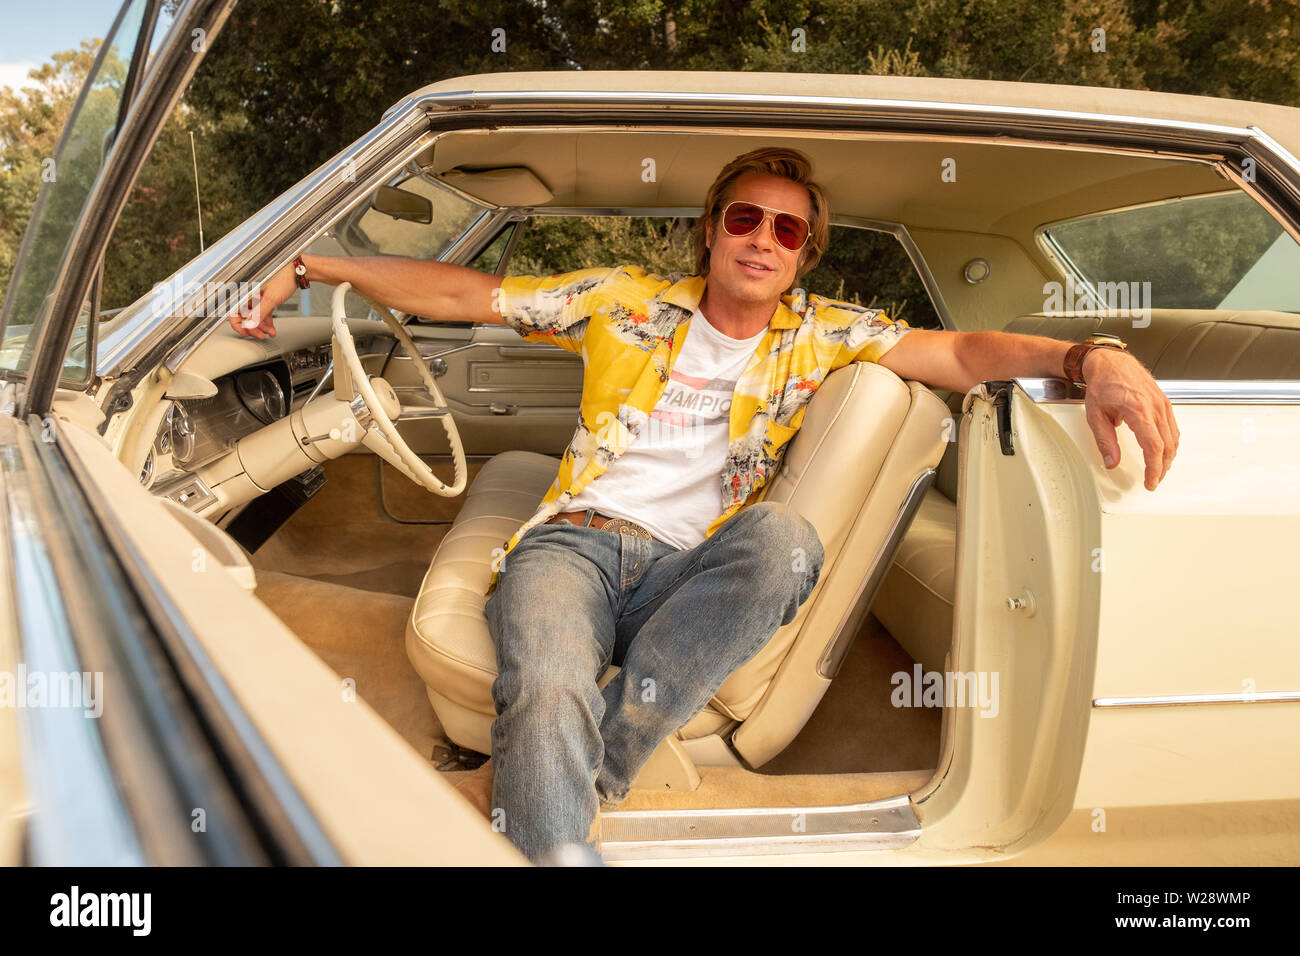 RELEASE DATE: August 9, 2019 TITLE: Once Upon a Time in Hollywood STUDIO: Columbia Pictures DIRECTOR: Quentin Tarantino PLOT: A TV actor and his stunt double embark on an odyssey to make a name for themselves in the film industry during the Charles Manson murders in 1969 Los Angeles. STARRING: BRAD PITT as Cliff Booth. (Credit Image: © Columbia Pictures/Entertainment Pictures) - Stock Image